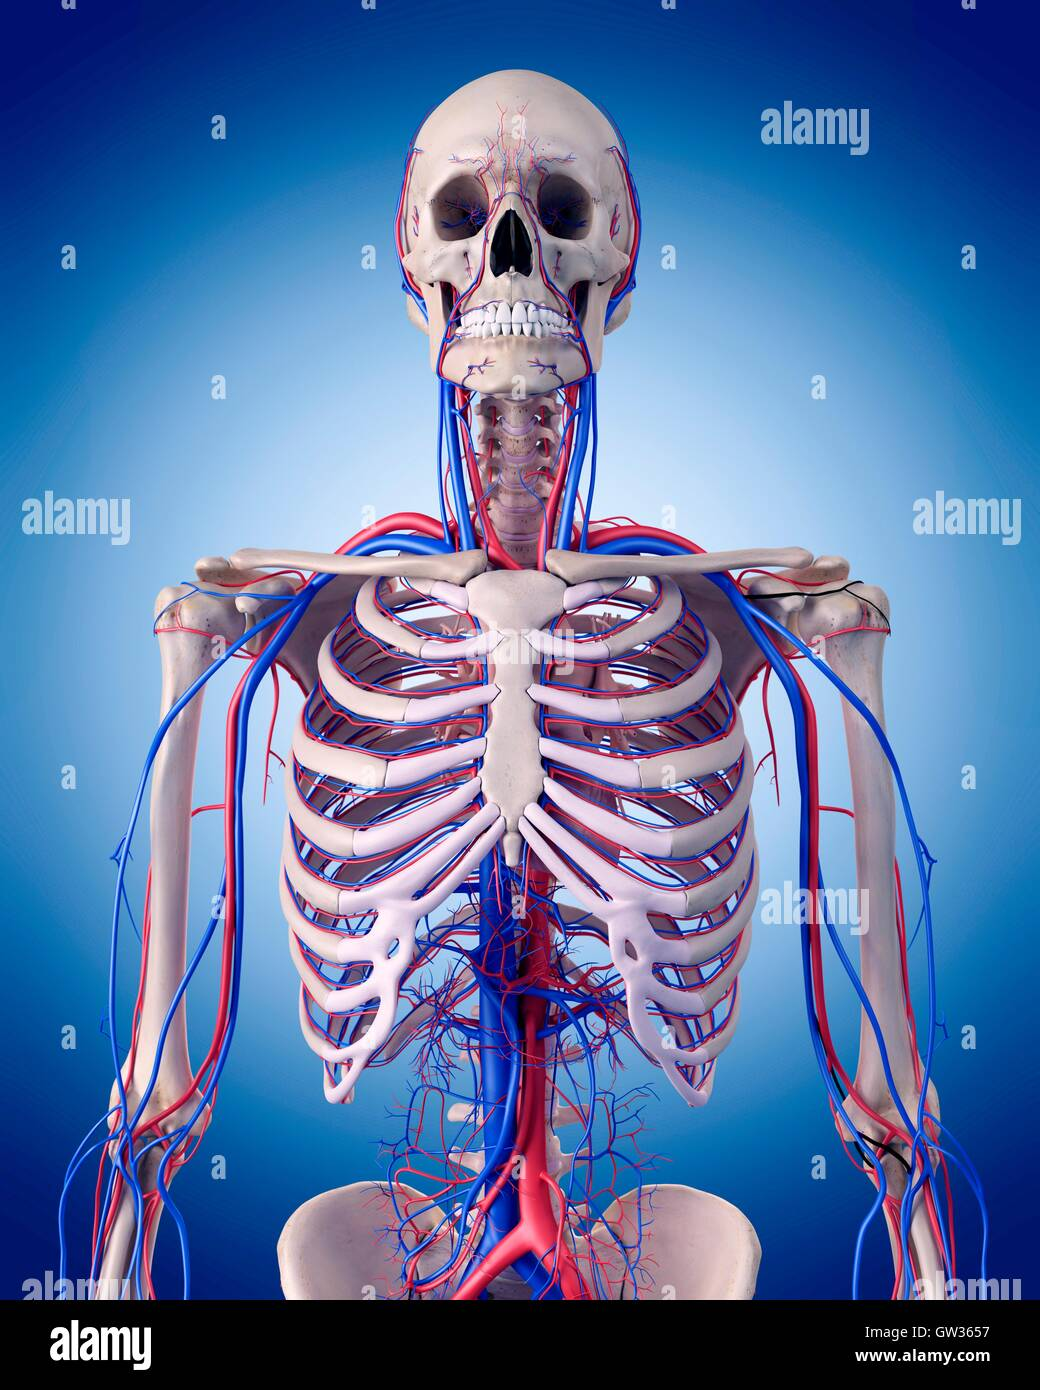 Human Vascular System Of The Thorax Illustration Stock Photo